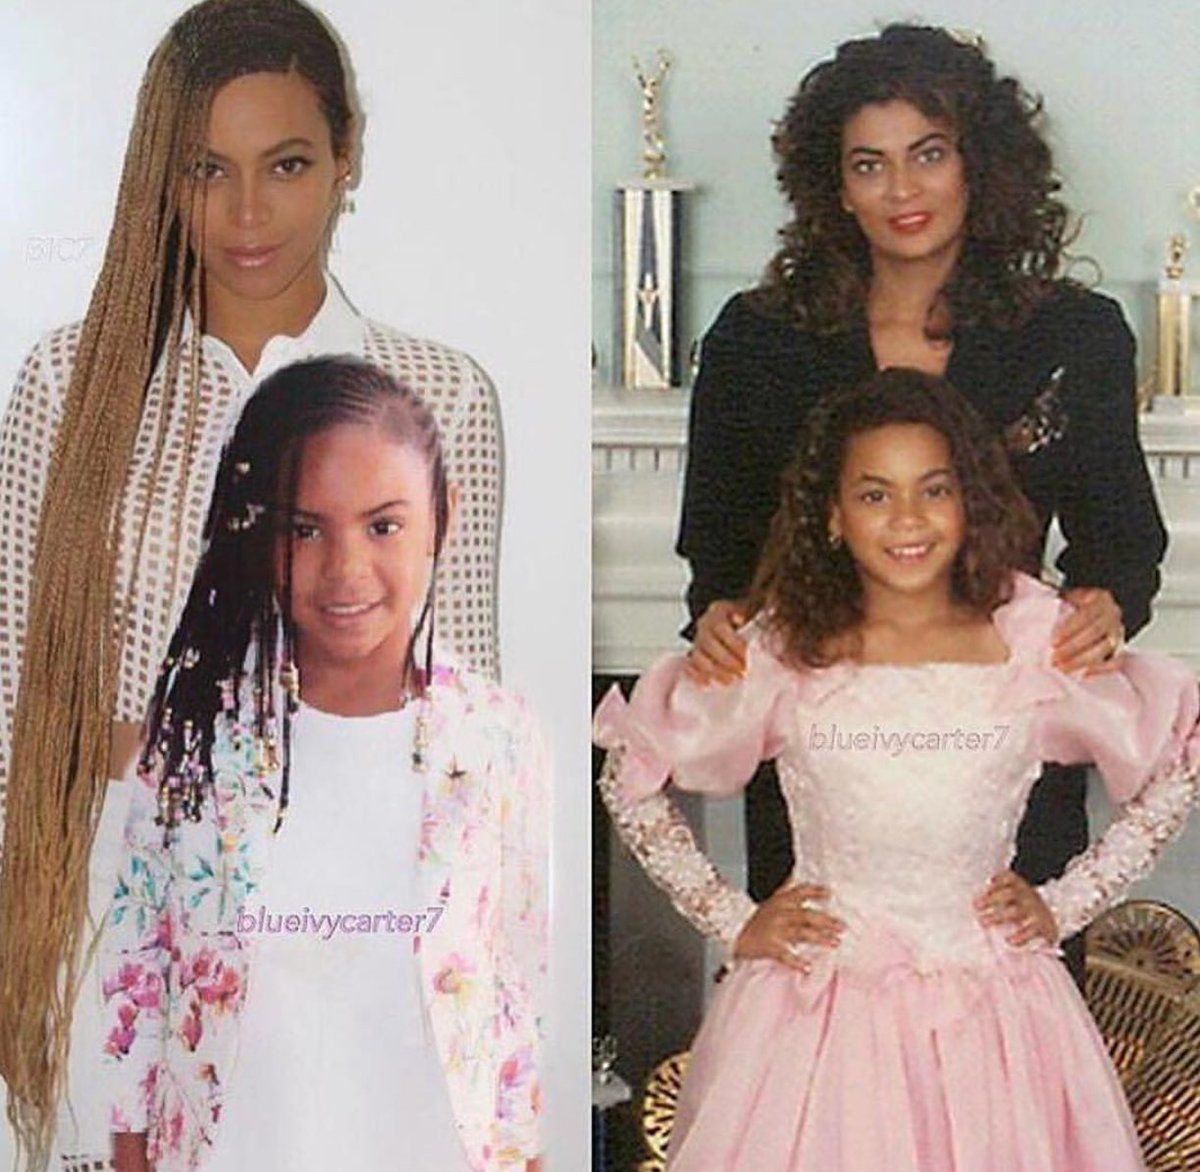 Tina Beyonce Blue Like Mother Like Daughter Beyonce Family Blue Ivy Carter Celebrity Families